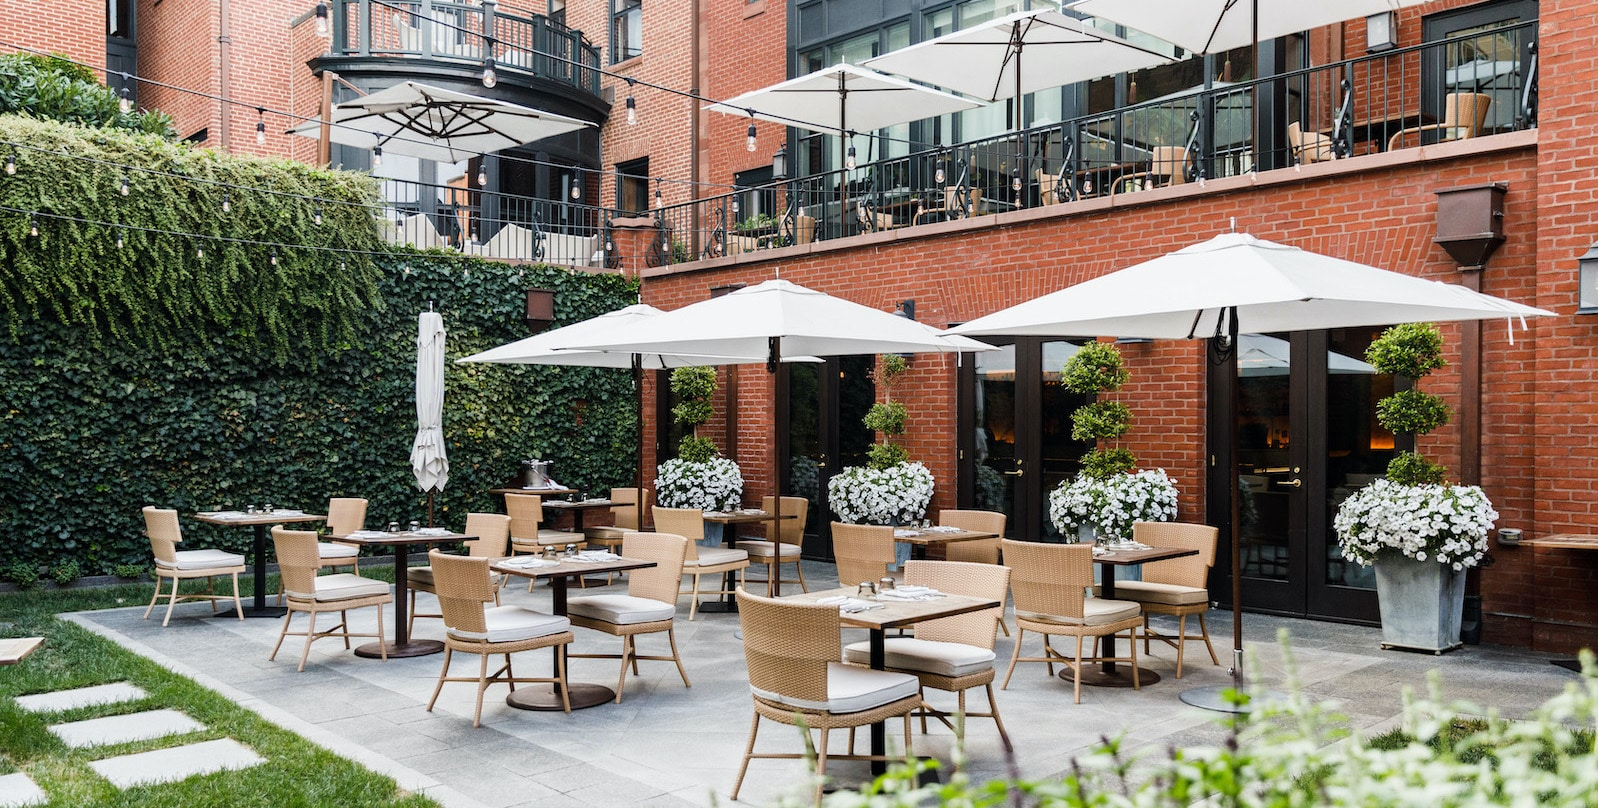 Tables, chairs and umbrellas set up in courtyard against lush ivy and brick face of the hotel.